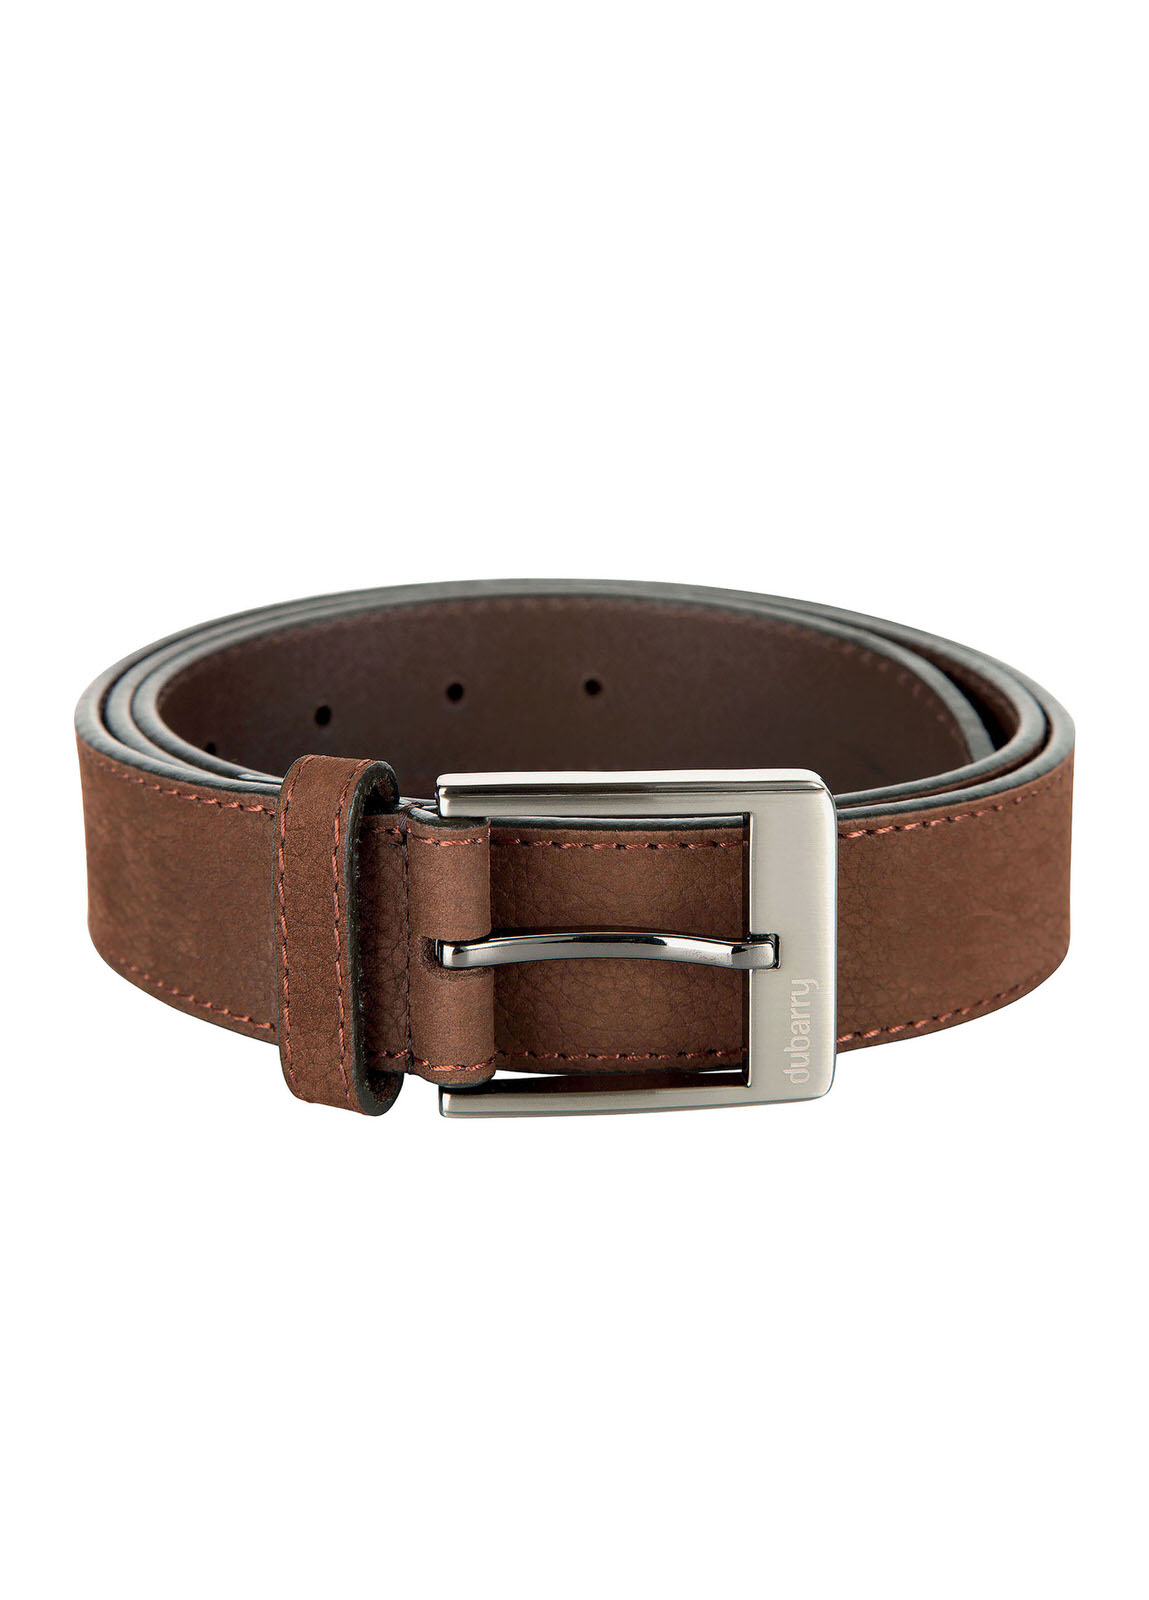 Belt_Walnut_Image_1